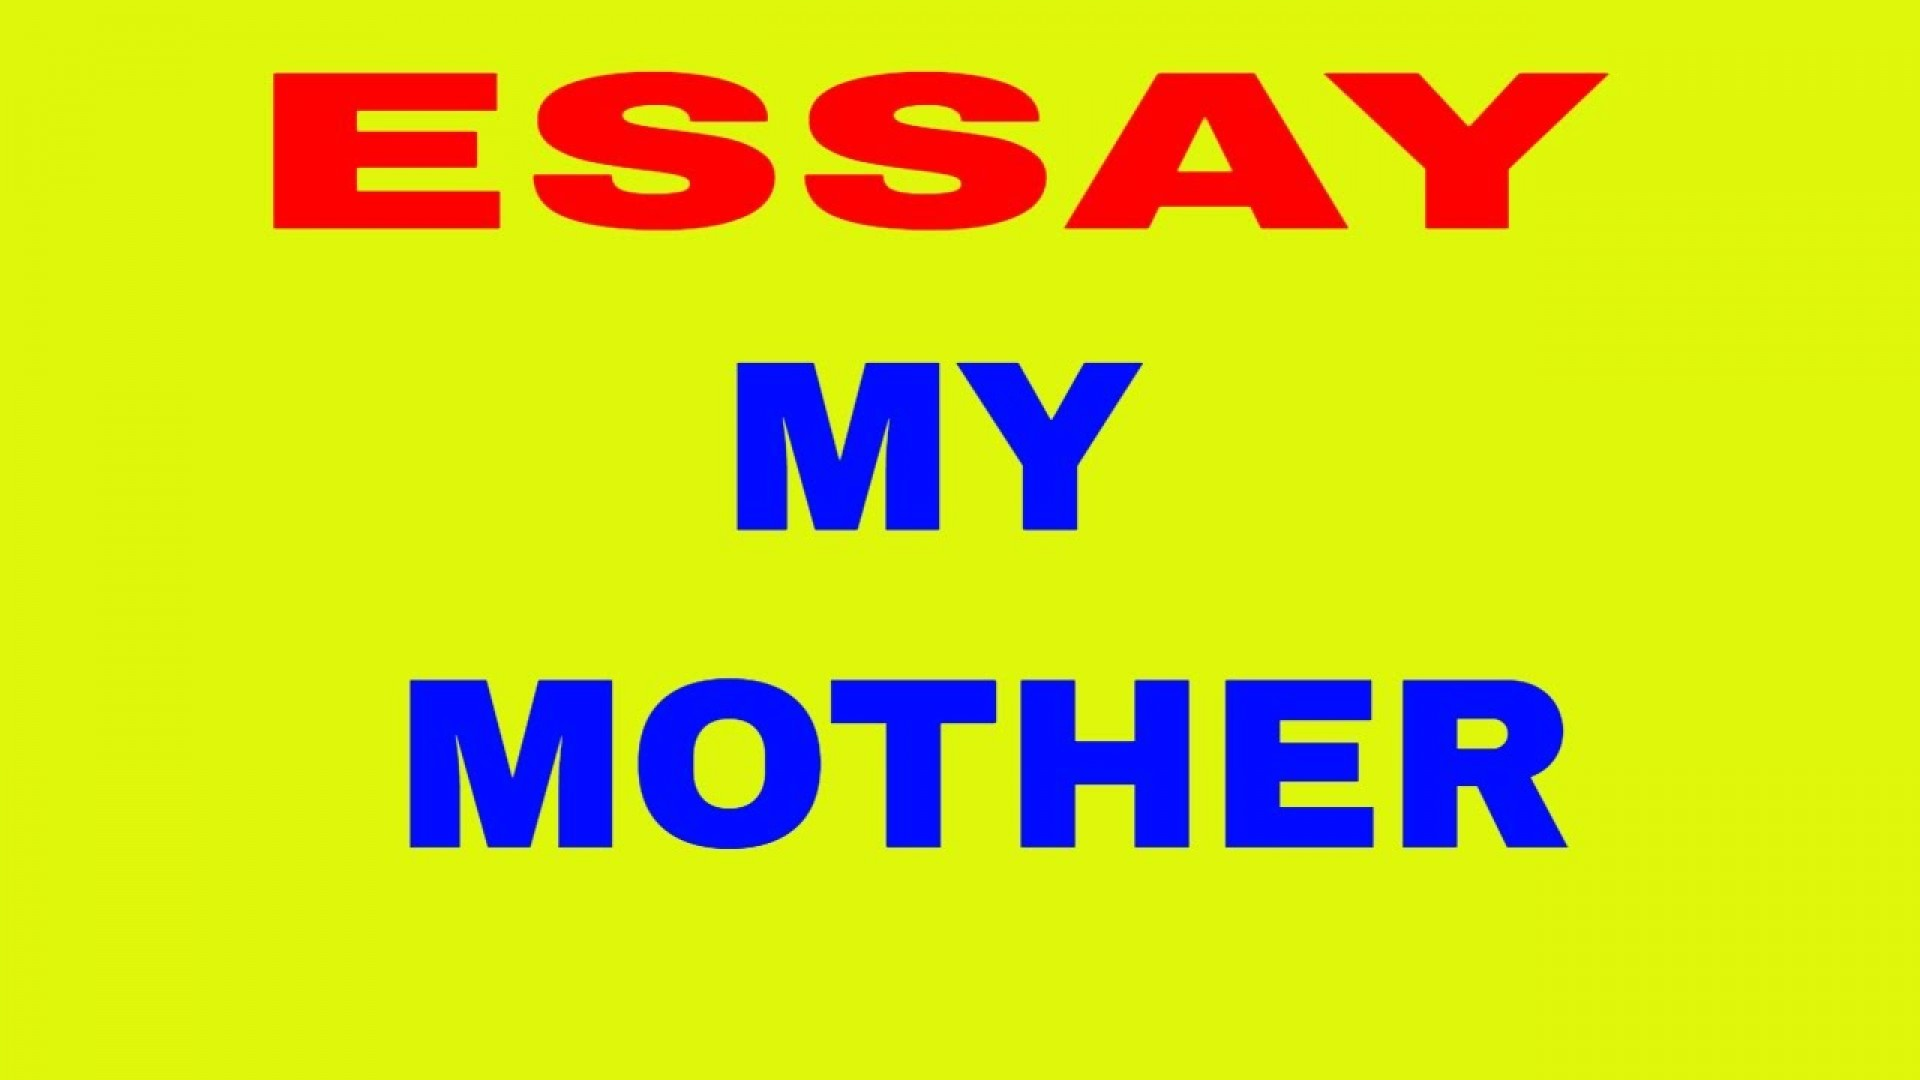 012 Maxresdefault Mother Essay Formidable My Conclusion In English For Class 3 1920